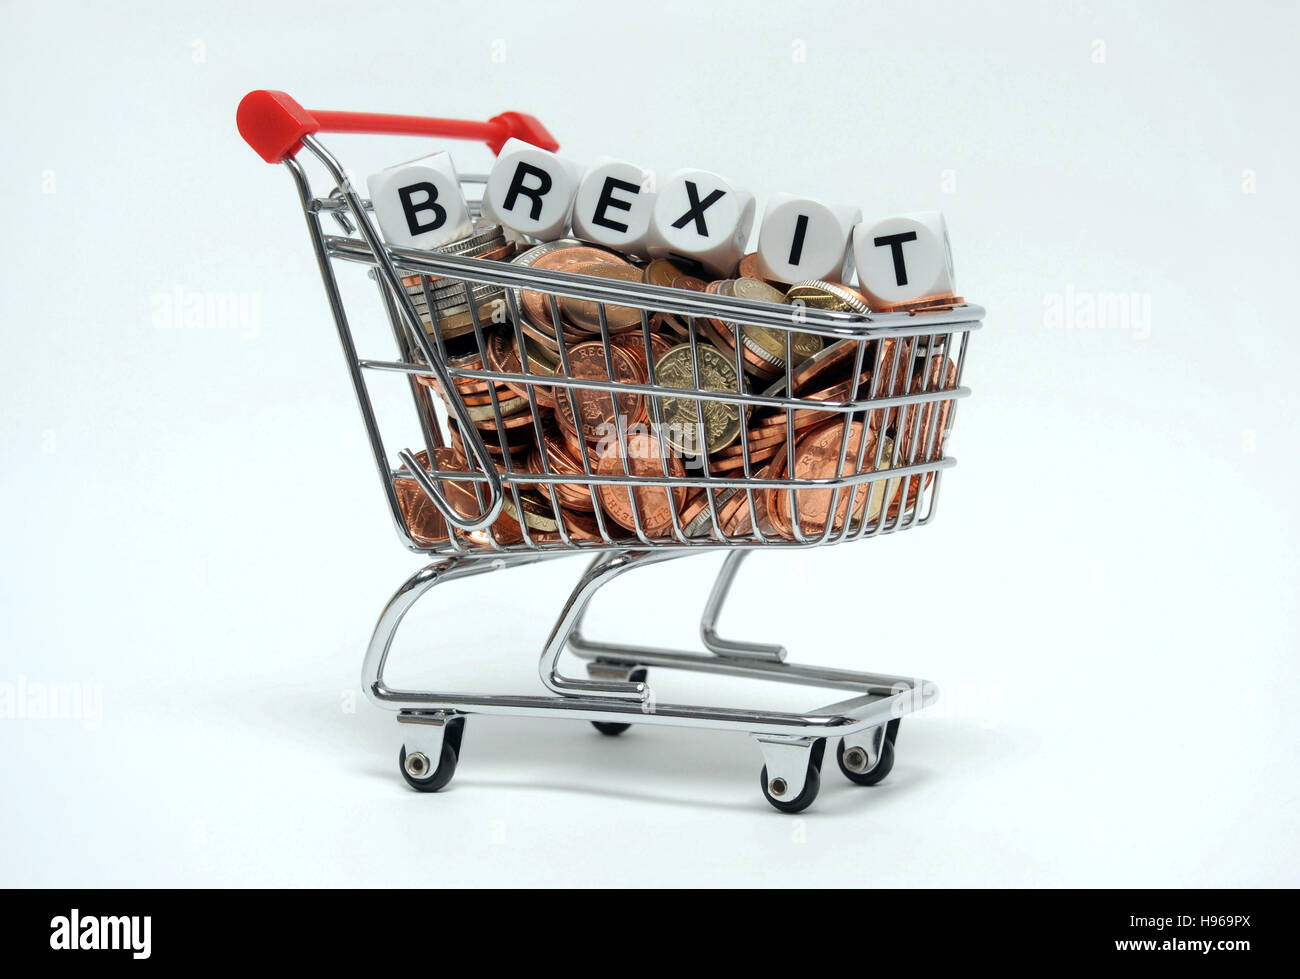 SHOPPING TROLLEY FULL OF  BRITISH MONEY WITH WORD DICE SPELLING 'BREXIT' RE BREXIT THE EU EUROPEAN UNION - Stock Image